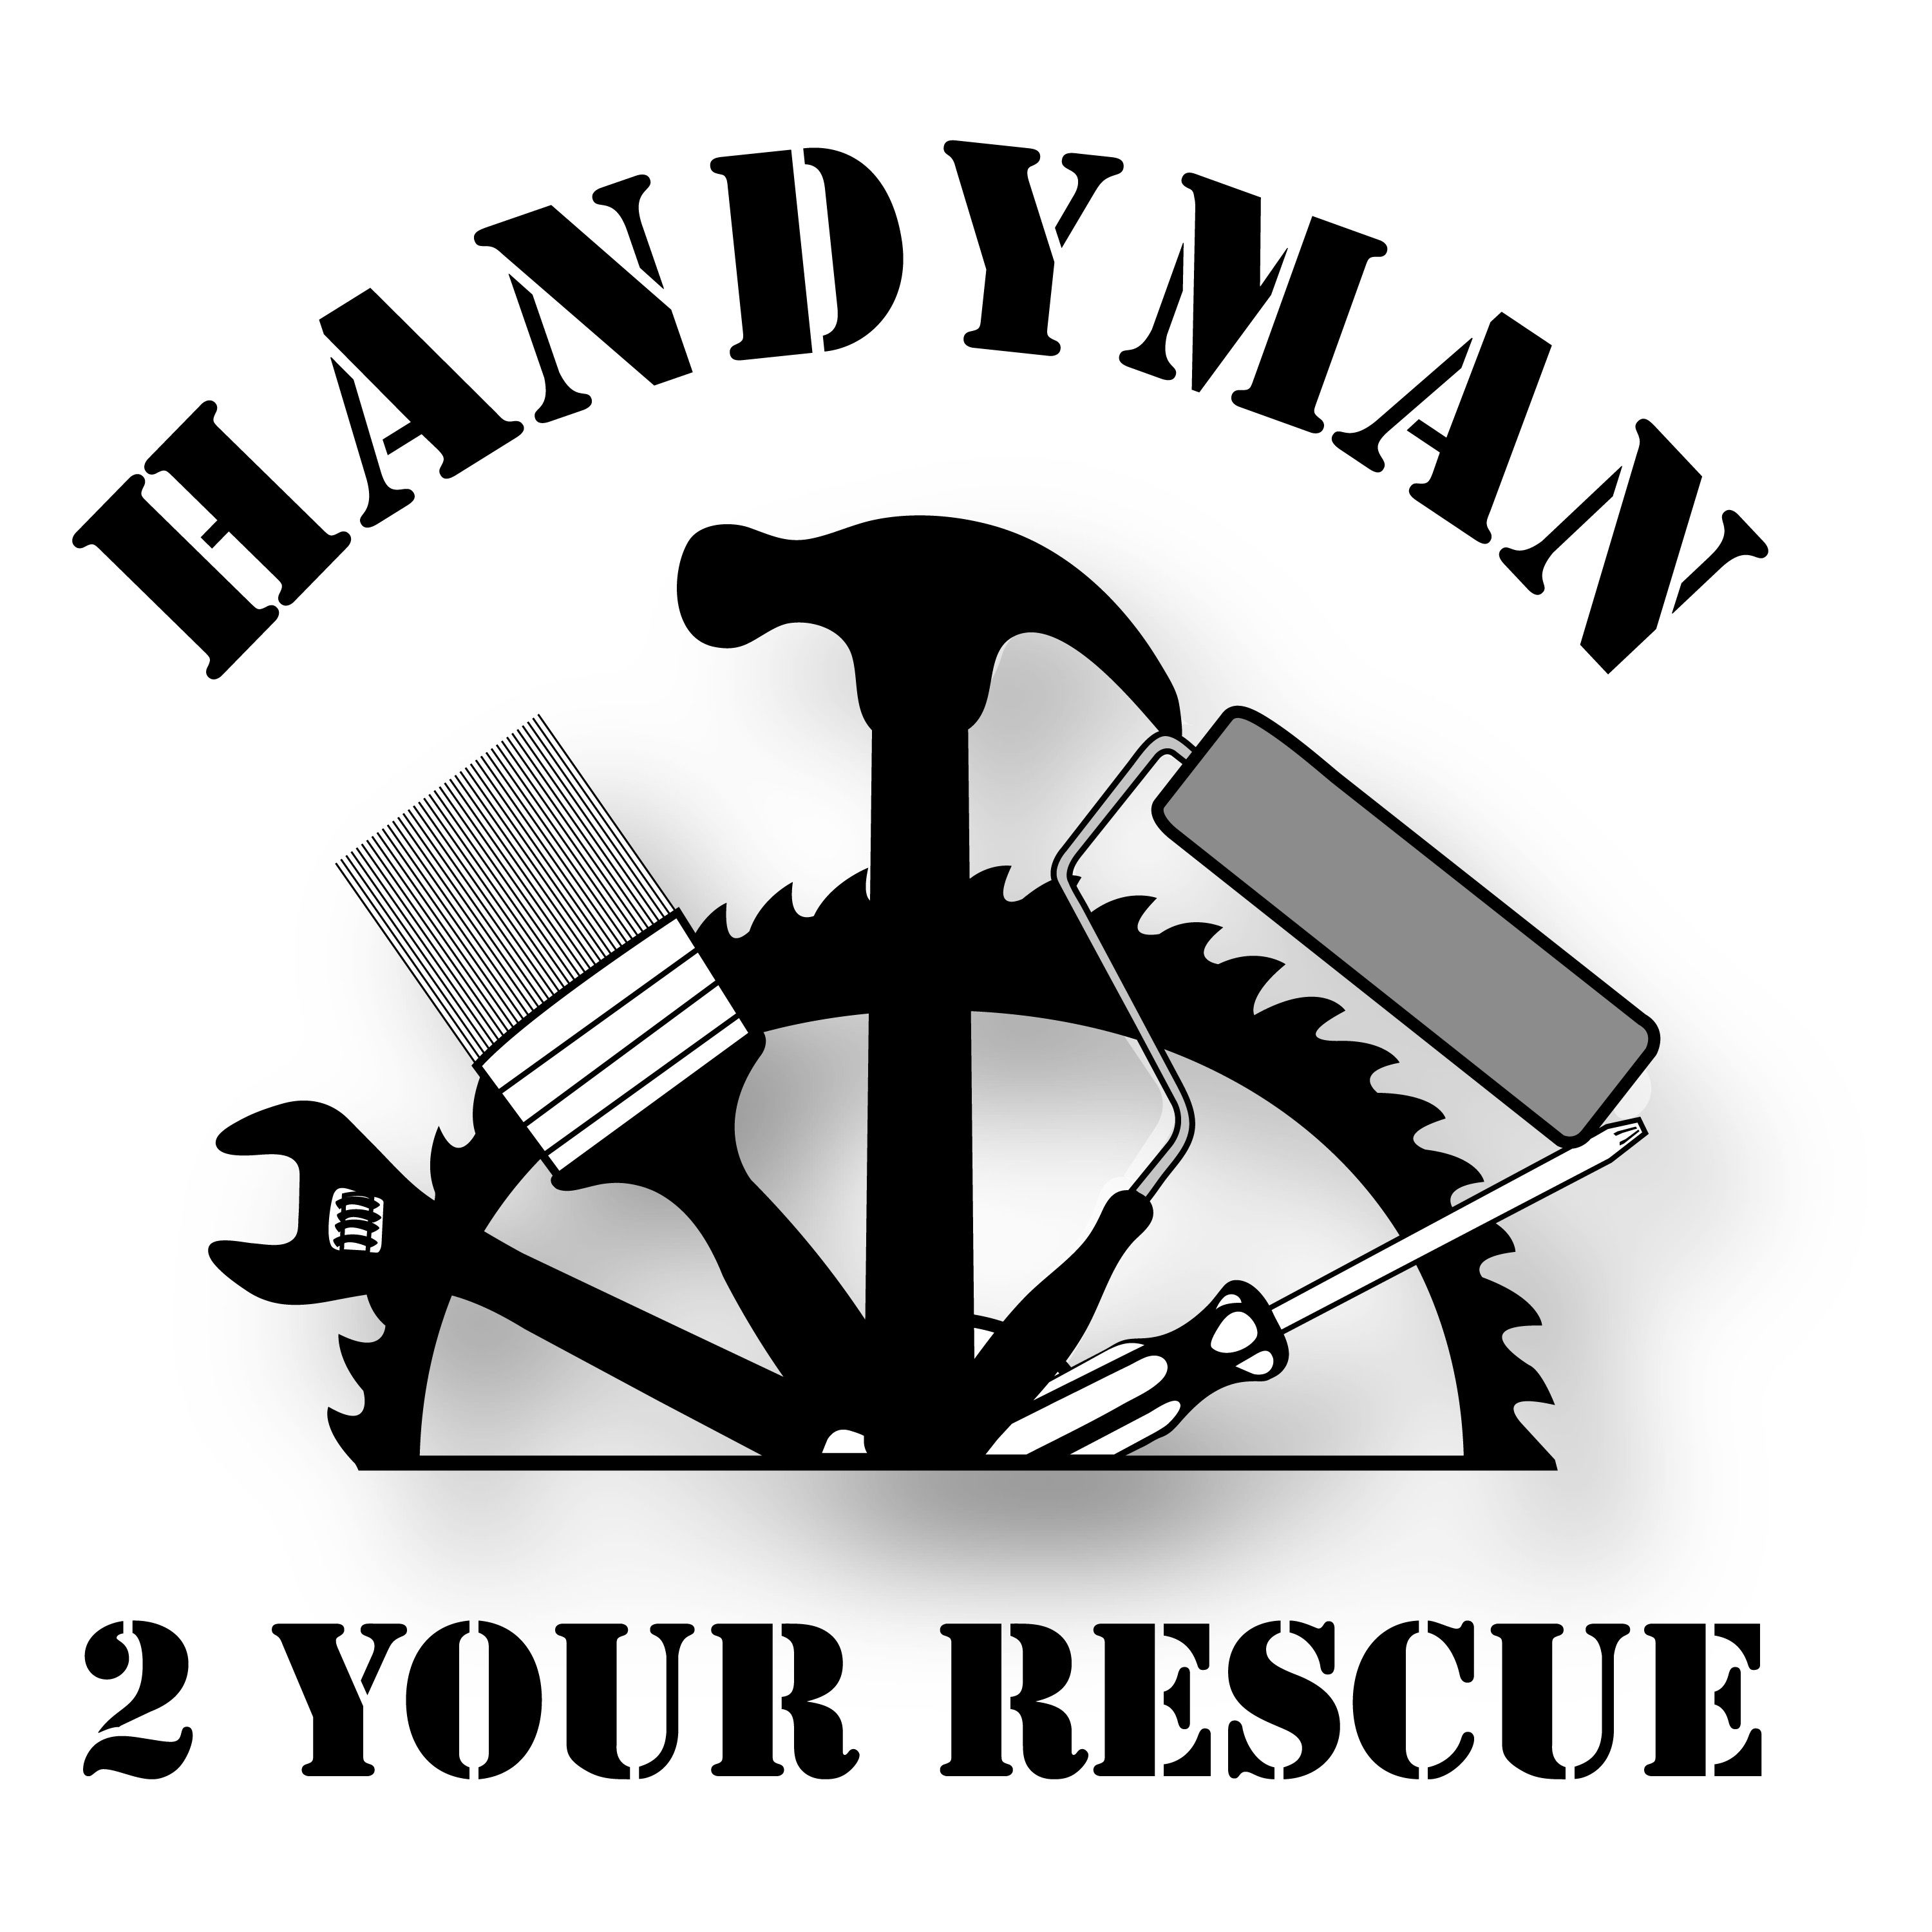 Home Repair Clipart Home Repair Logos Clipart Handyman